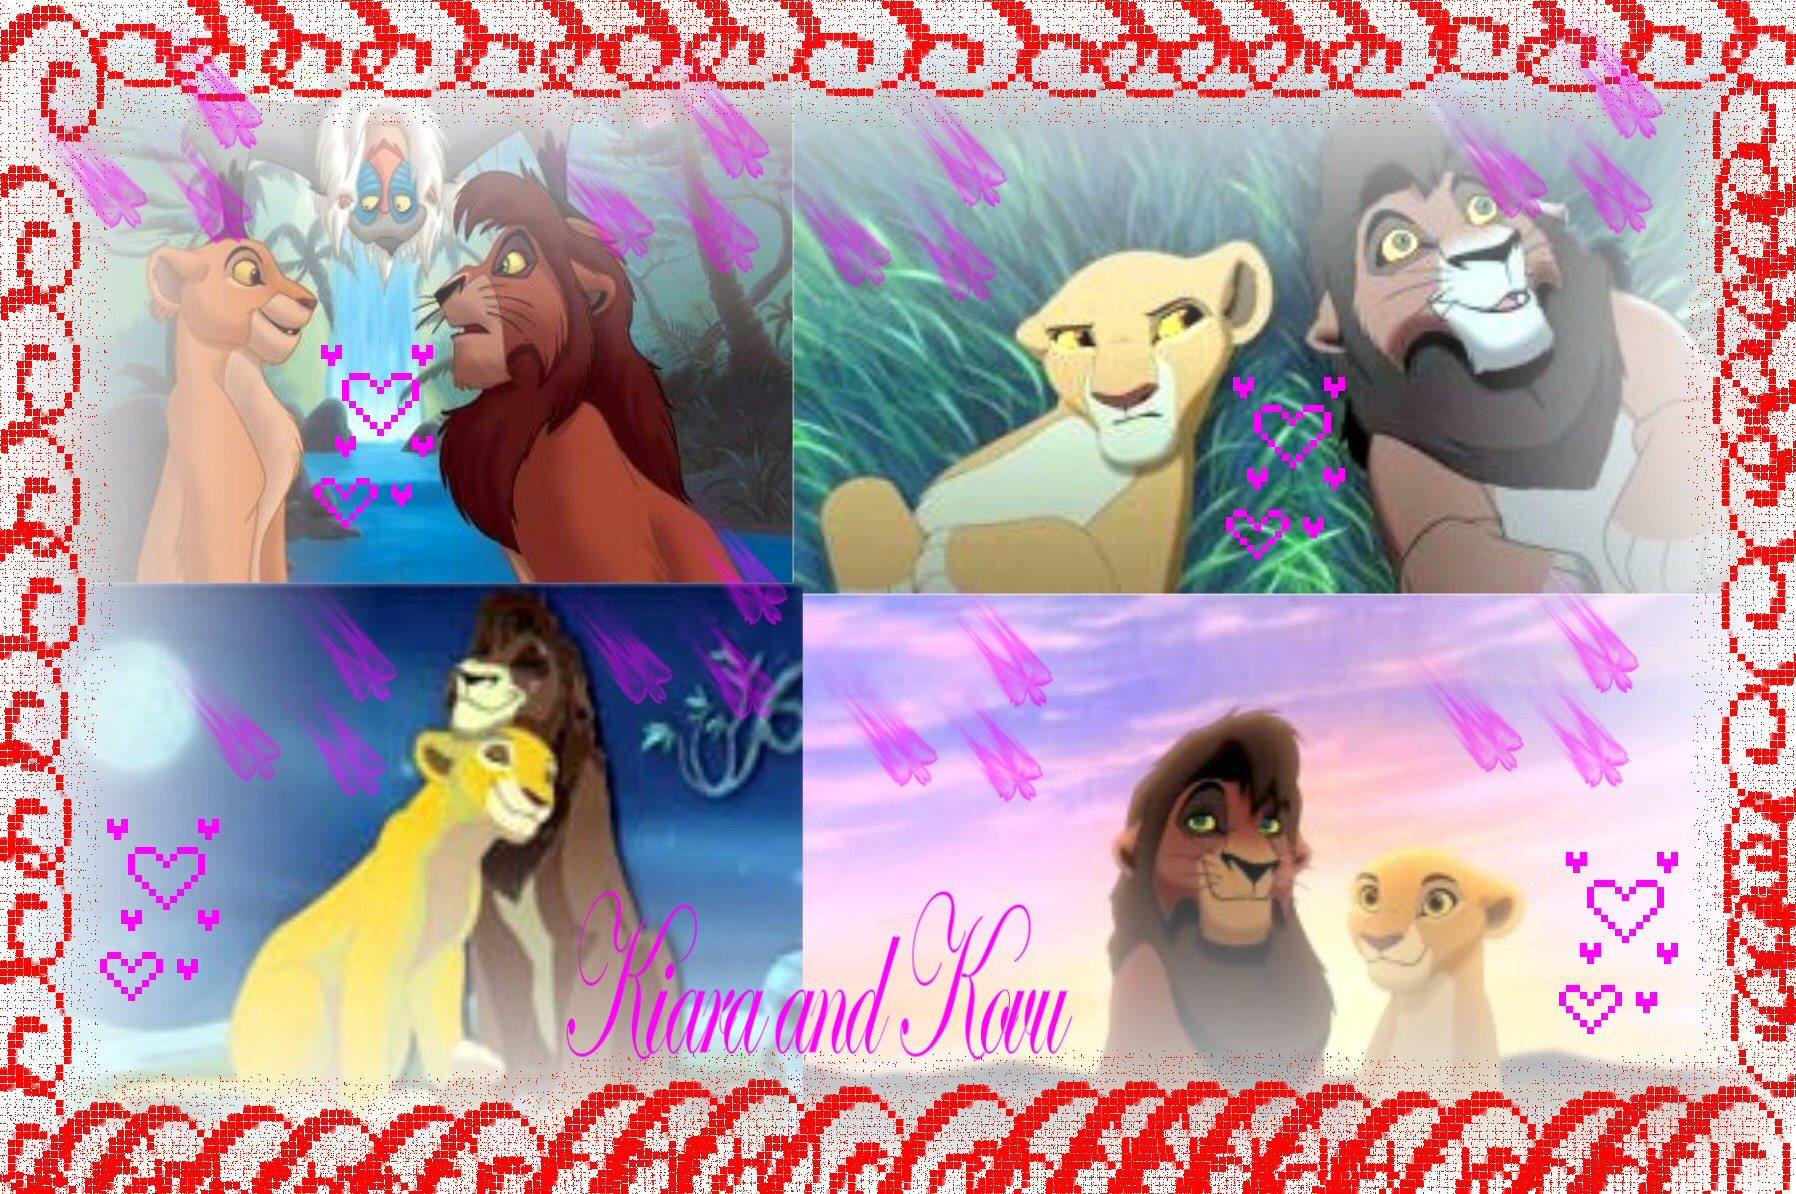 Lion king couples kiara-and-kovu